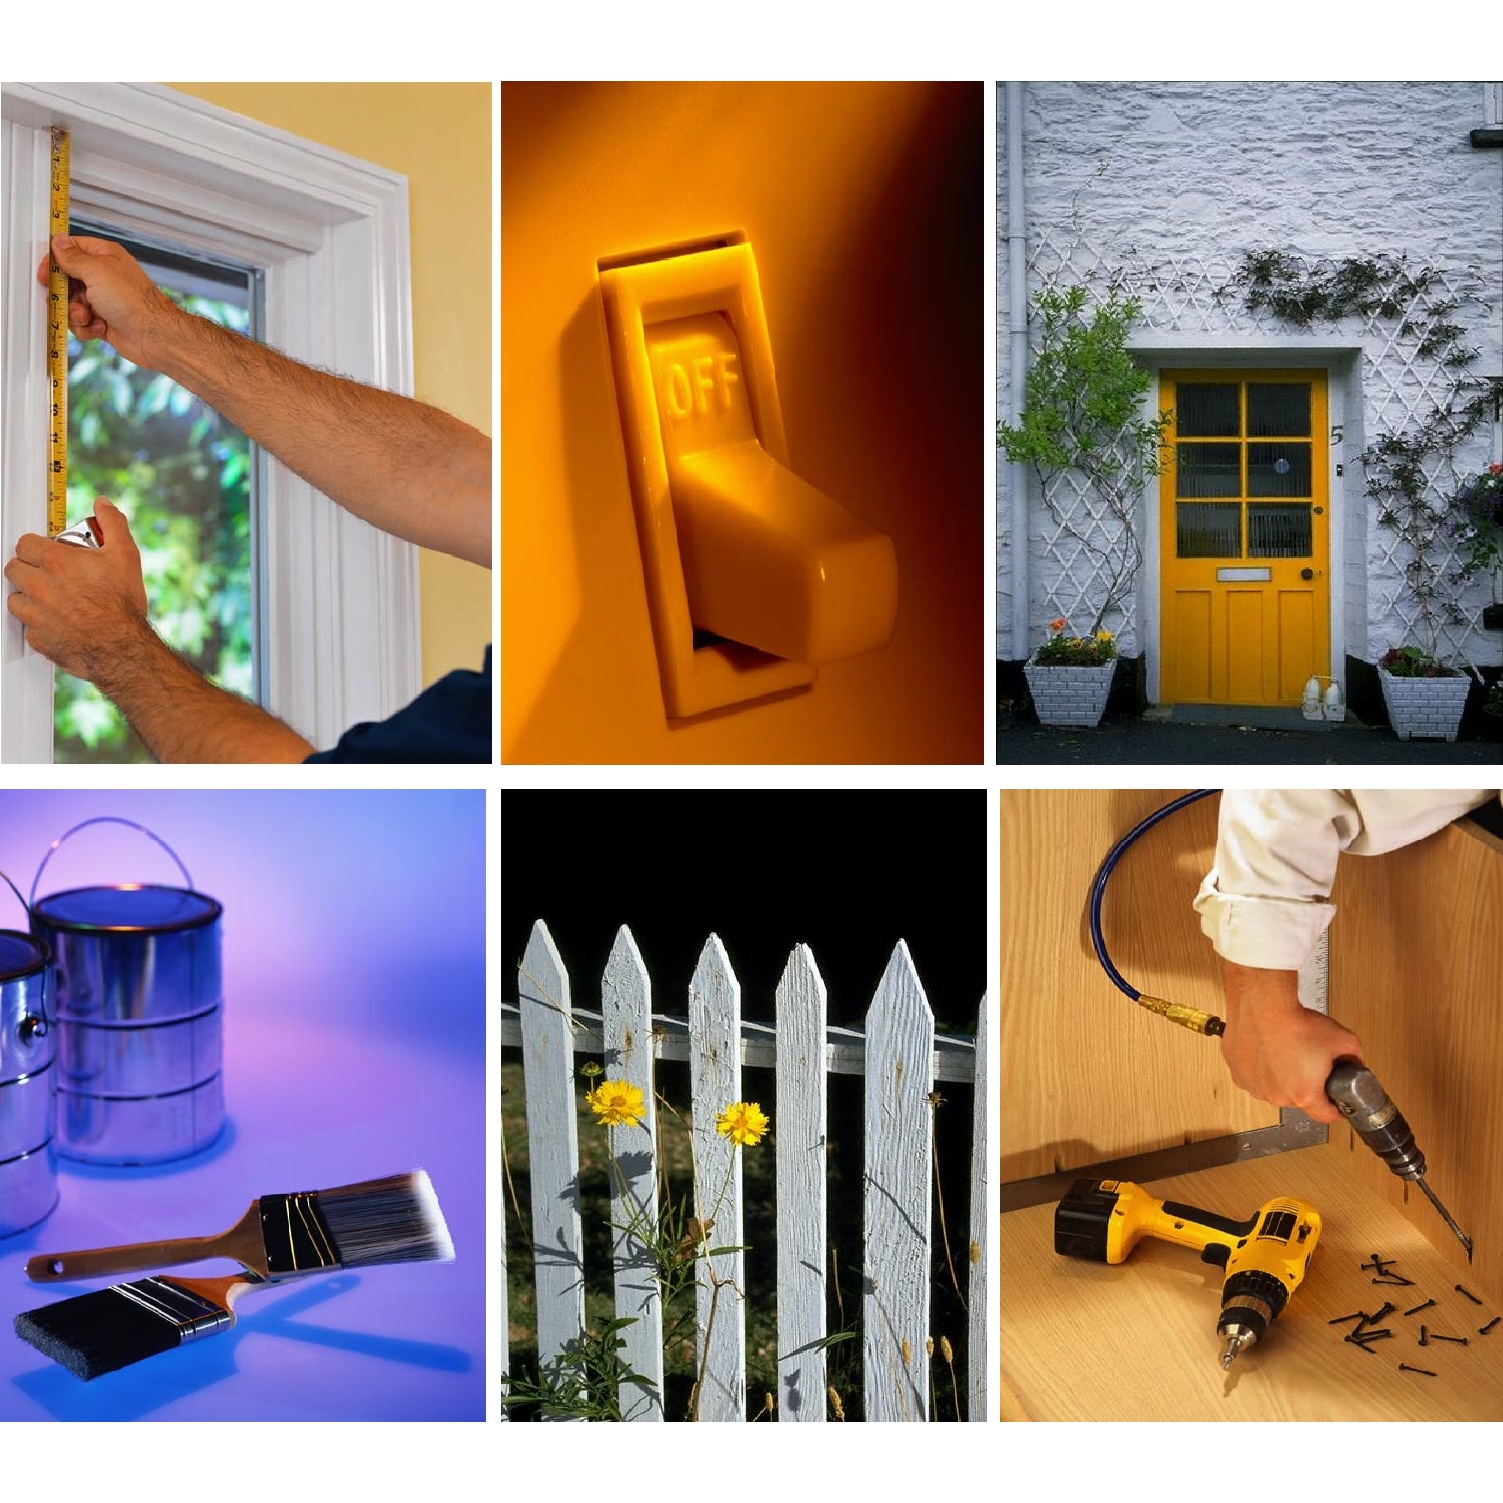 All american anchoring remodeling inc in sarasota fl for American remodeling